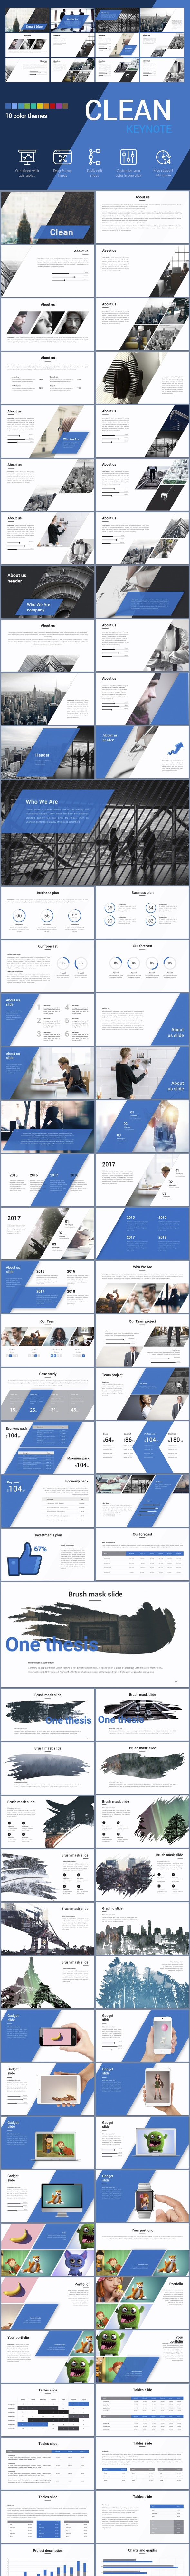 Clean Keynote template - Creative Keynote Templates